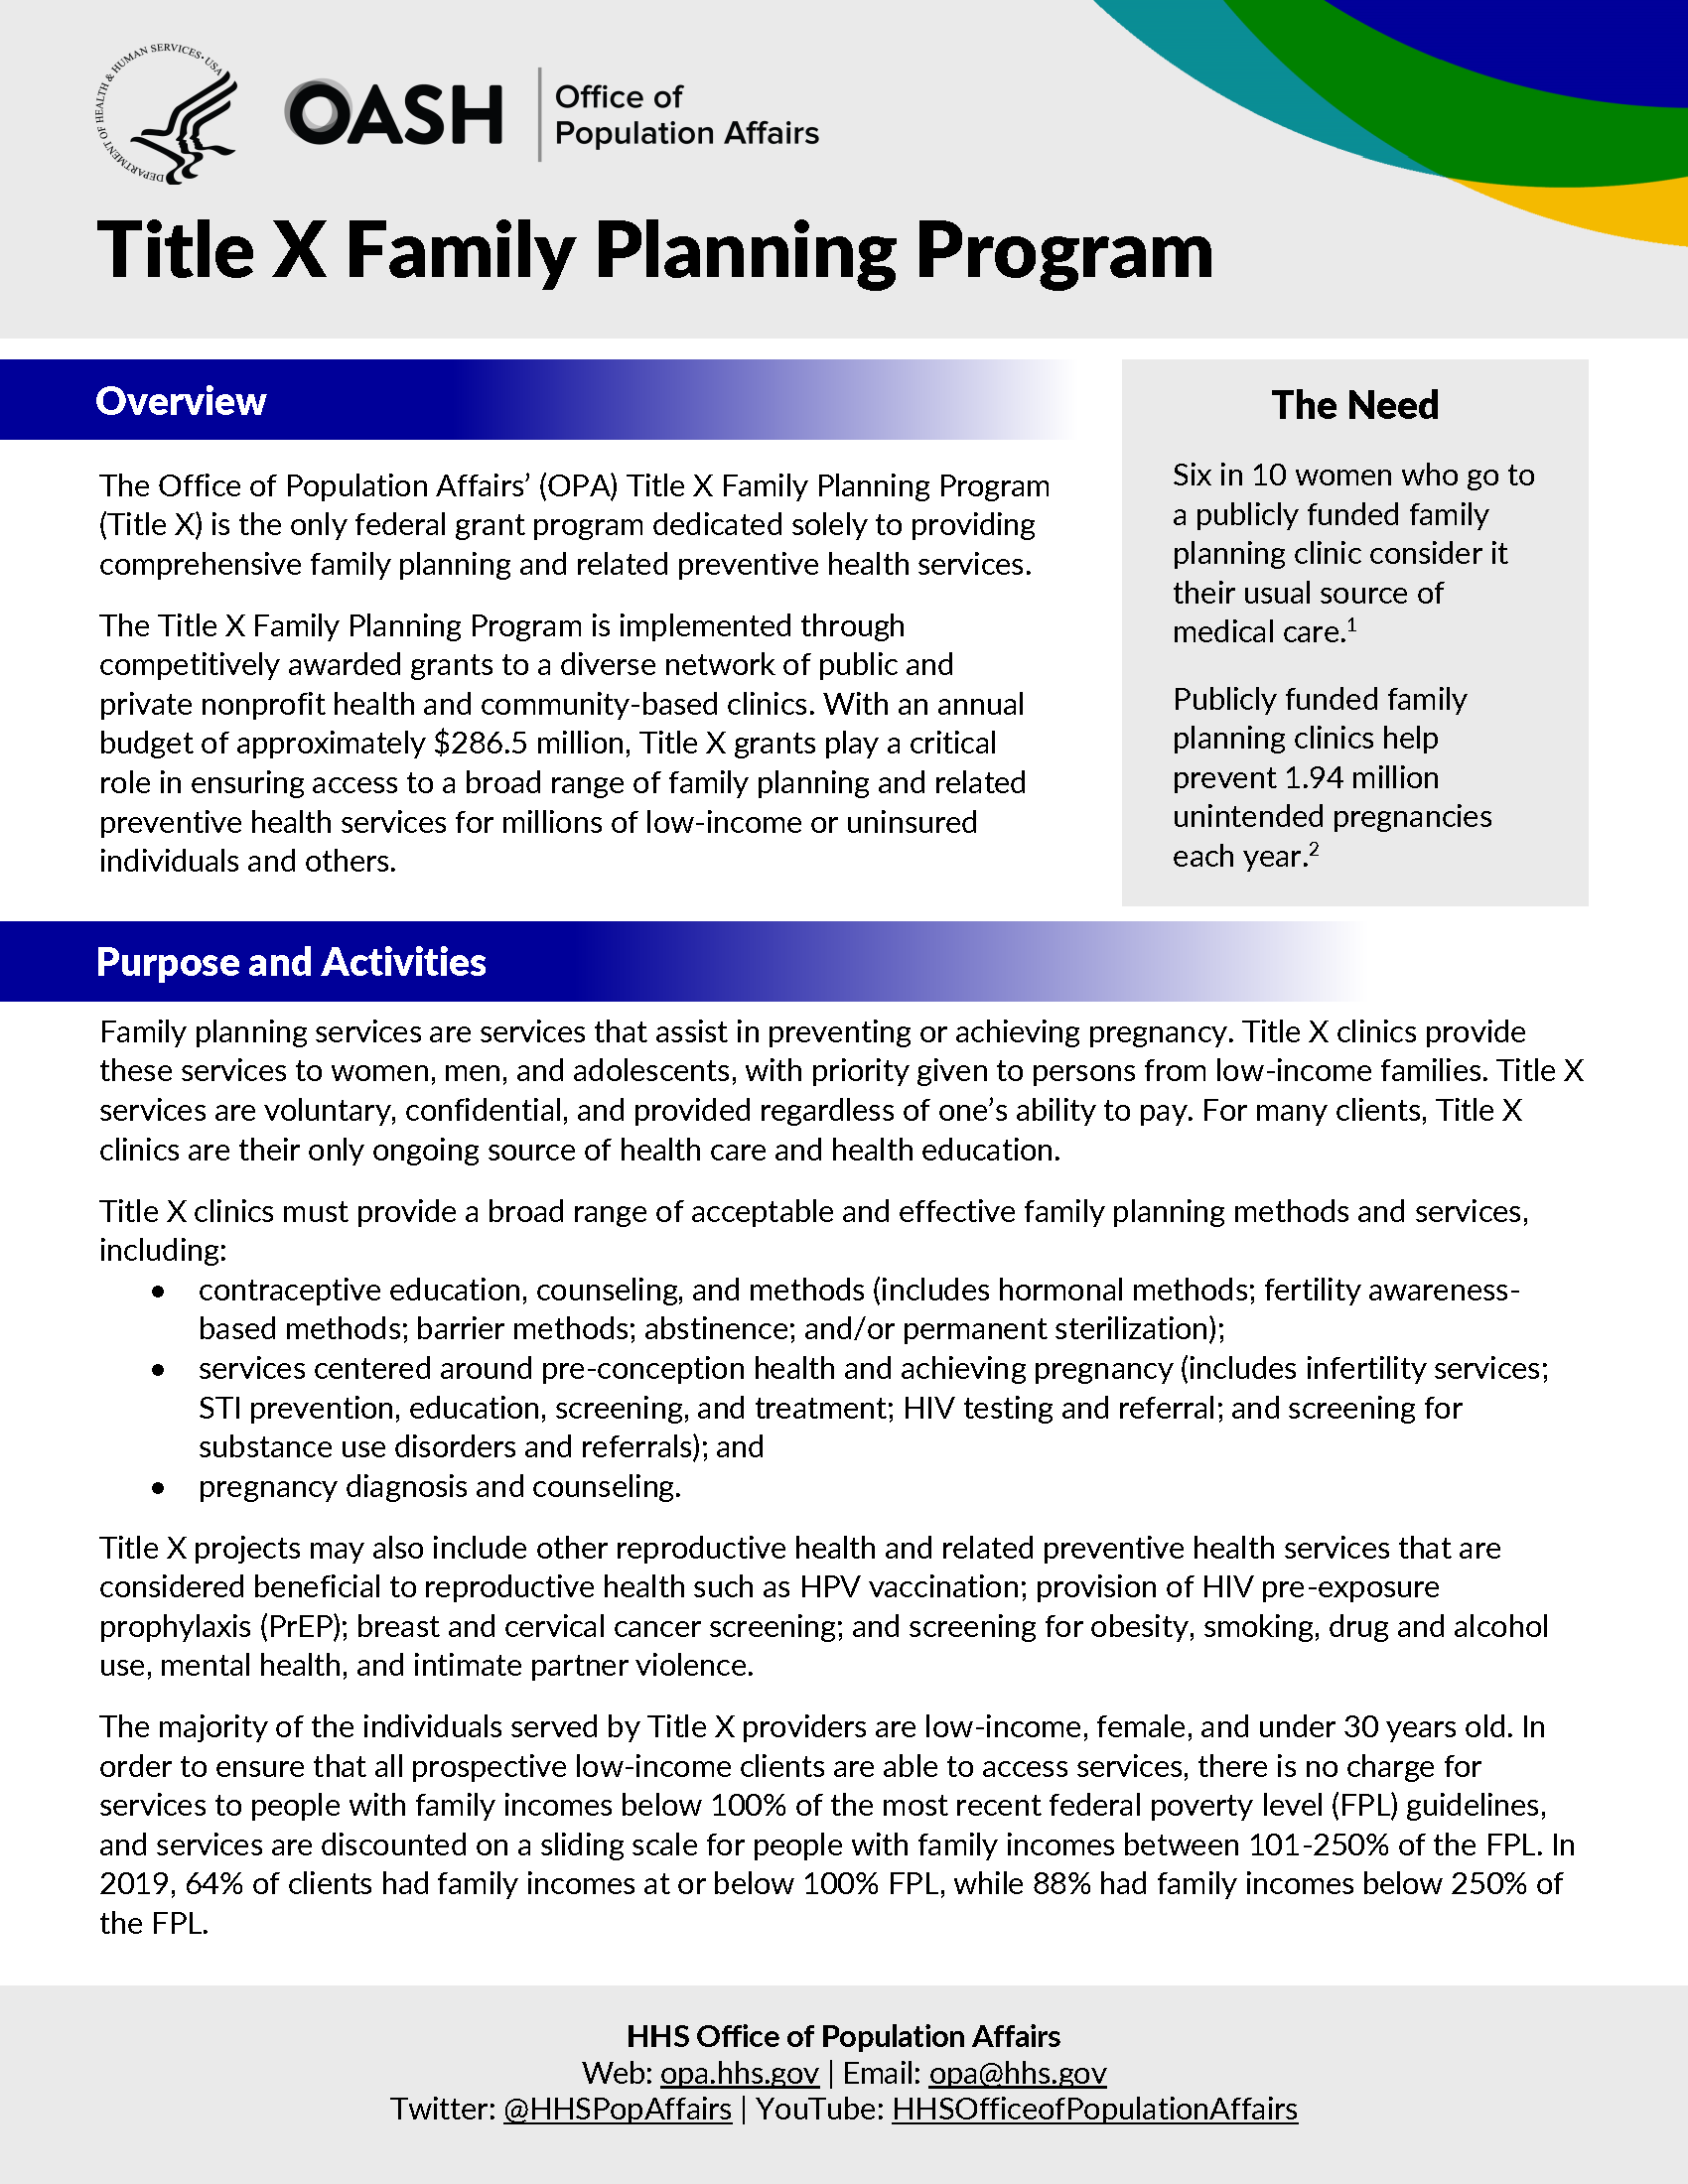 First page of Title X family planning program one-pager.